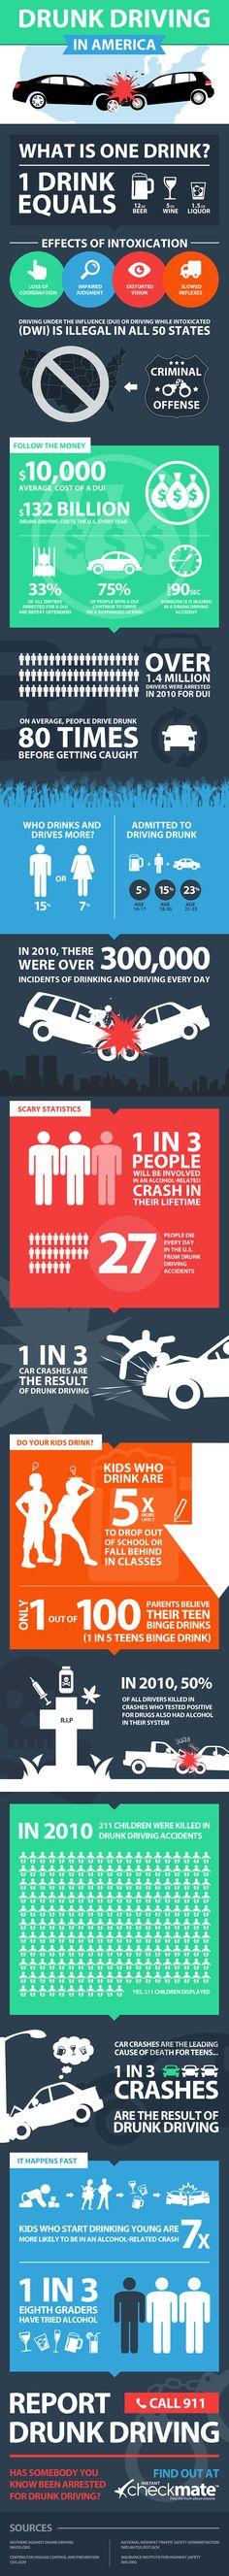 This graphic has some scary stats of drinking and driving, I always want to promote drinking responsibly.  DON'T DRINK & DRIVE!  Even if you have a single drink, have someone else drive who hasn't had a drop to drink.  Be safe.  (6/20/2013) Health: Problems (CTS)